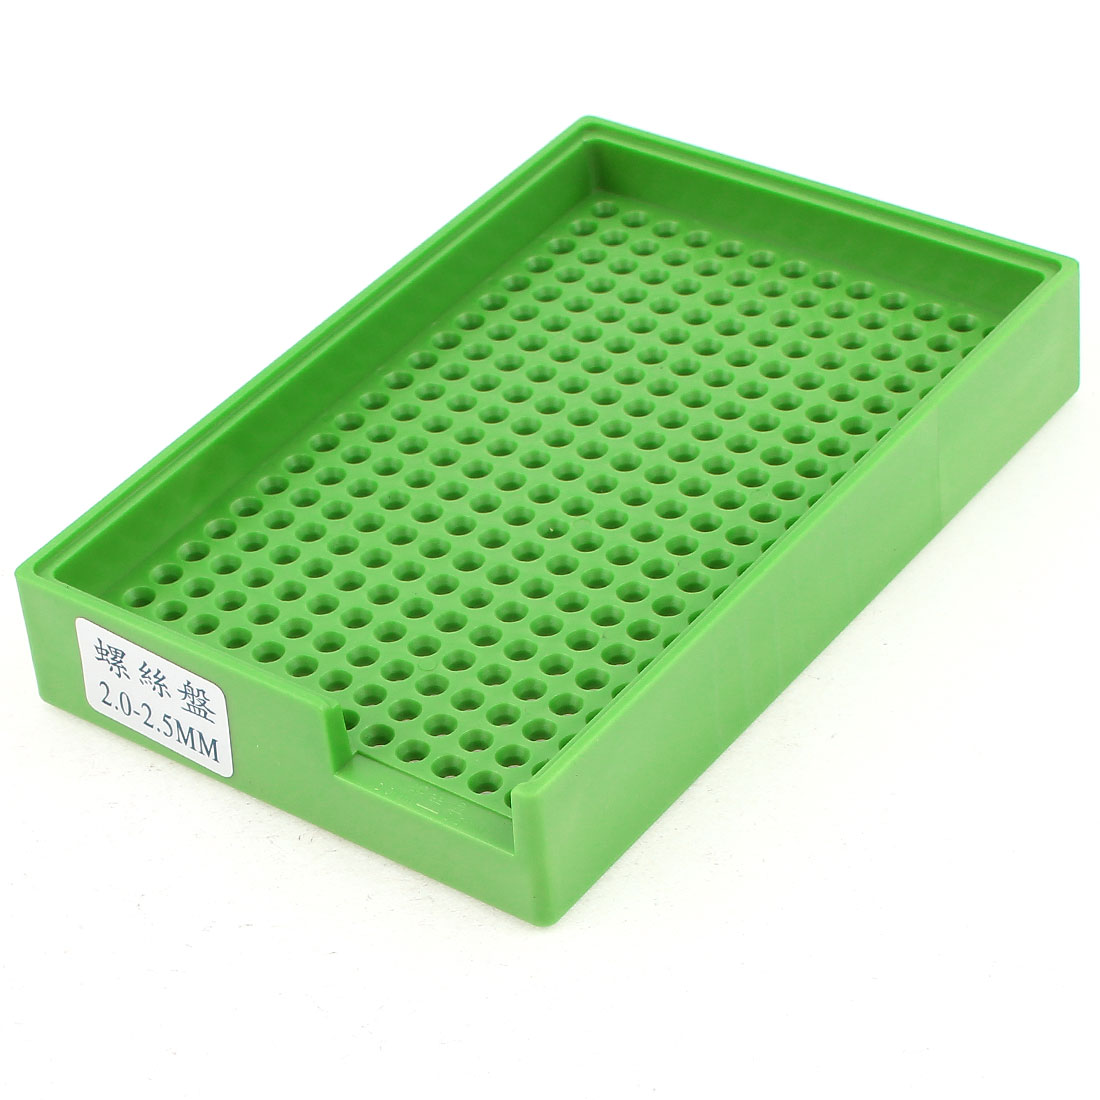 Anti-static Plastic Tray Holder Green 273 Holes for 2.0mm-2.5mm Screws